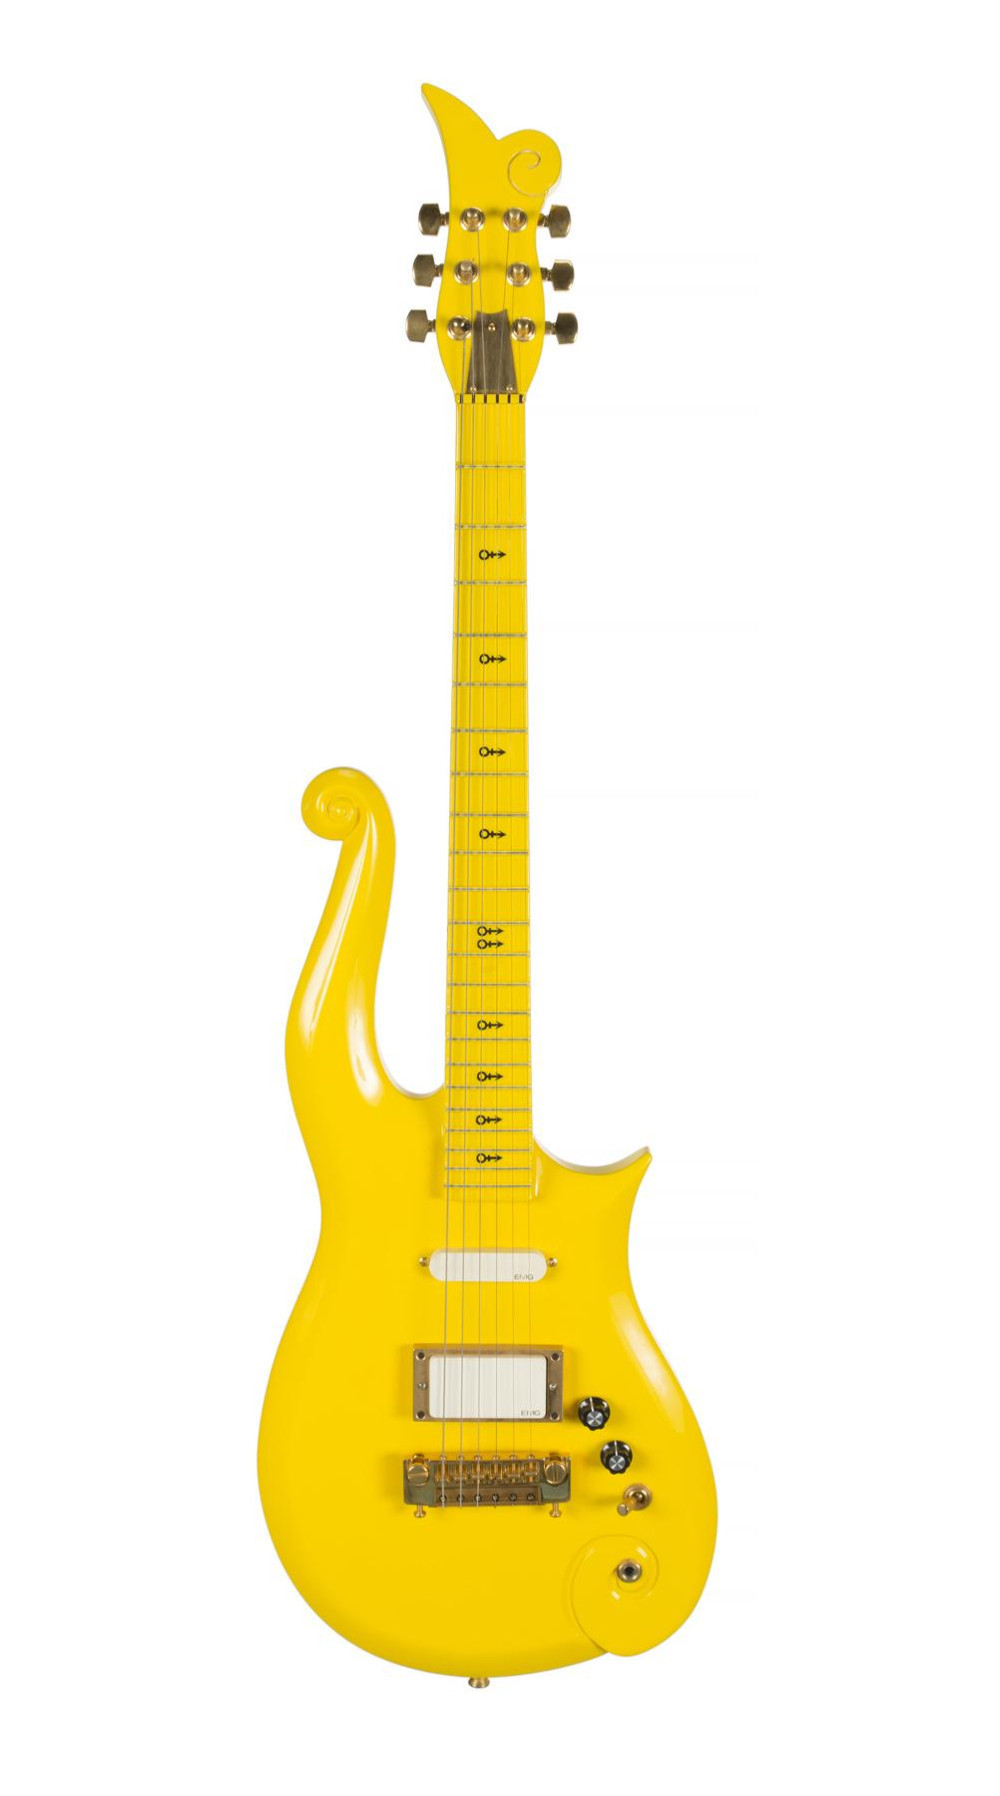 Prince's Yellow Cloud Guitar Sells For $225,000 at Auction